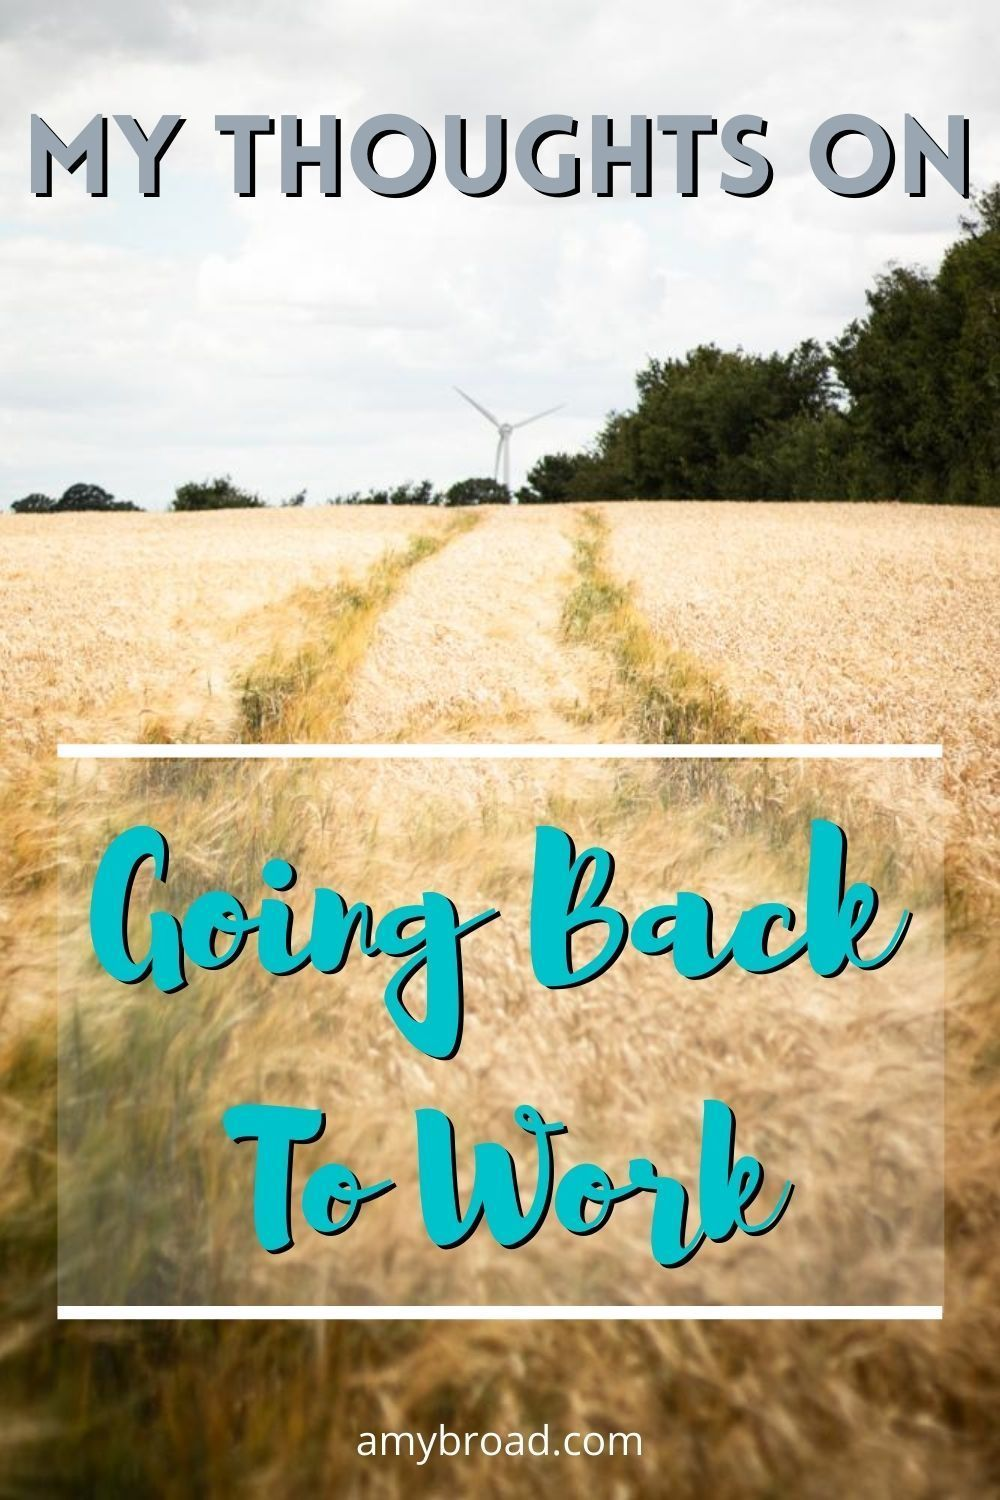 Going Back to Work After 2 Years Off - My Thoughts - It is definitely an adjustment going from 0 hours work a week to a full-time job. There are positives and negatives, and all of that time off has really made me appreciate time at home. So I thought a would write a little blog post on my thoughts on going back to work. Which I think is happening for a lot of us right now, are getting back from furlough or months working from home.